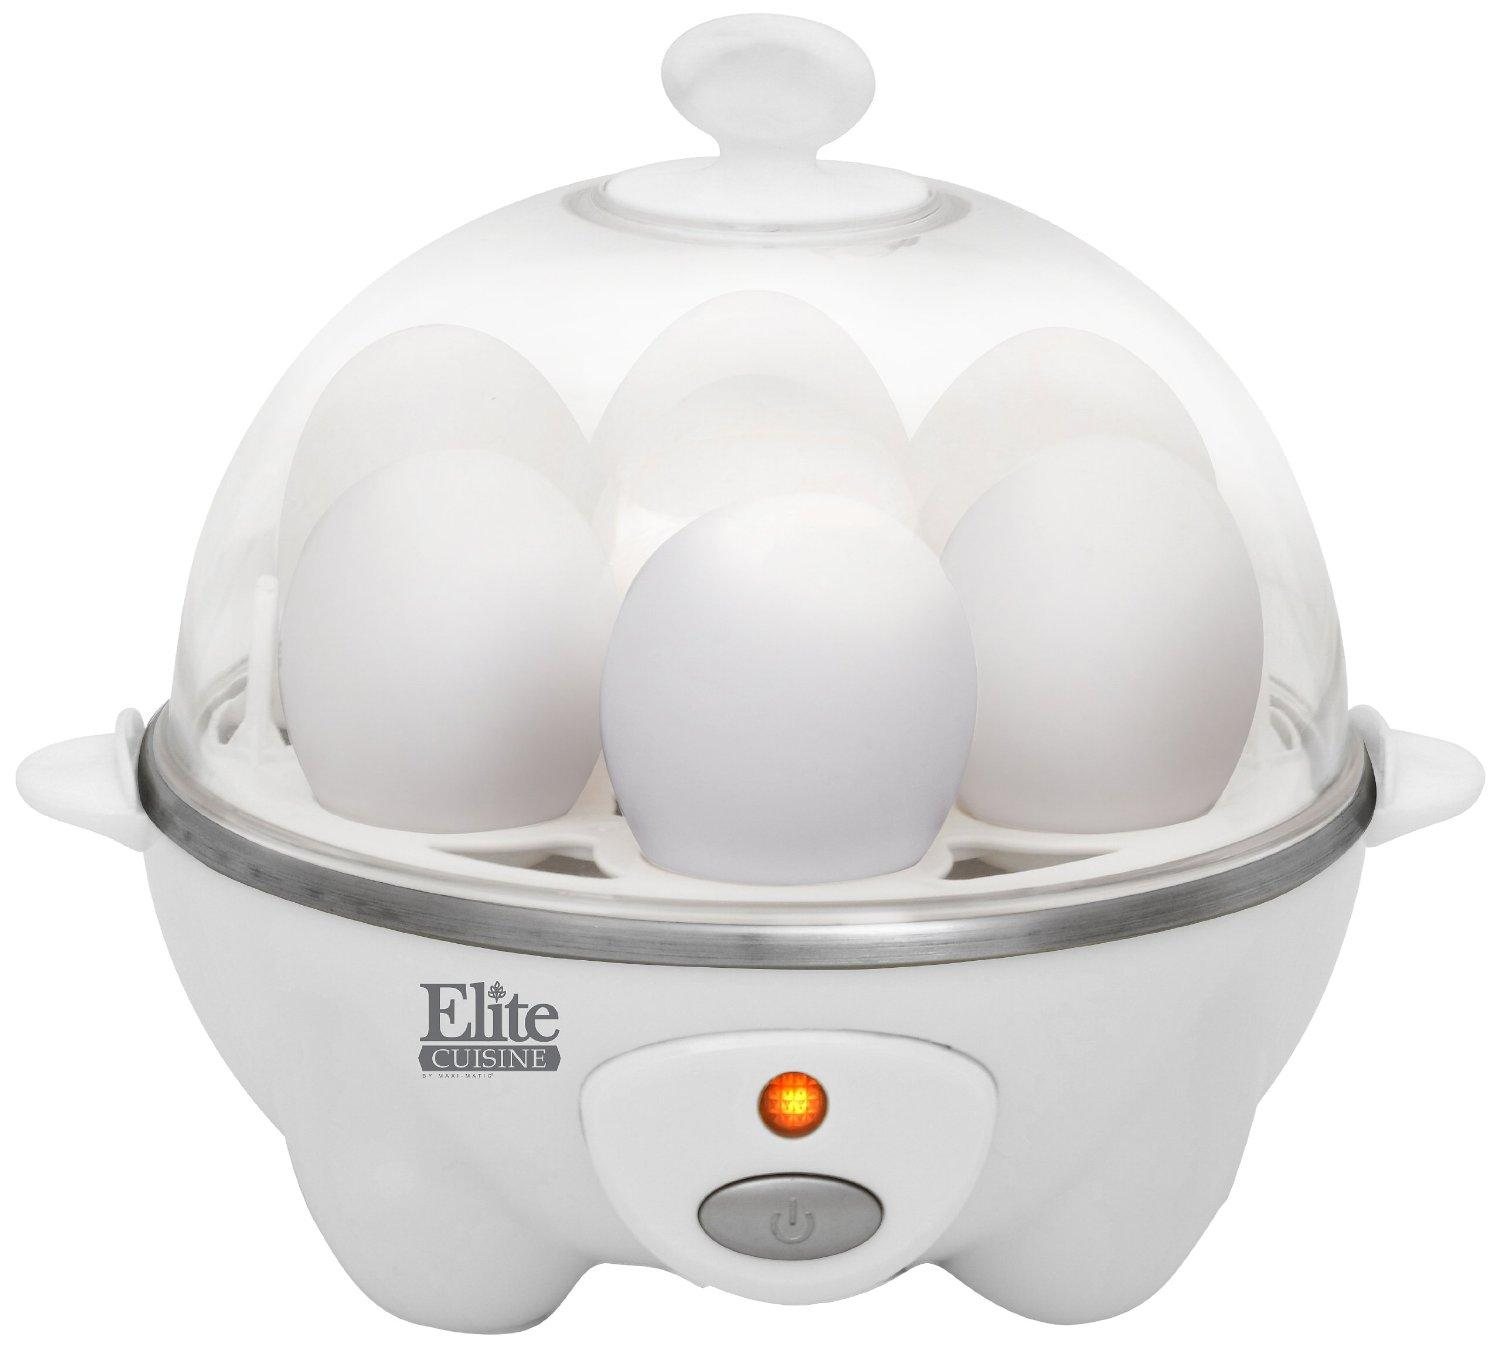 Elite Cuisine EGC-007 MaxiMatic Egg Cooker